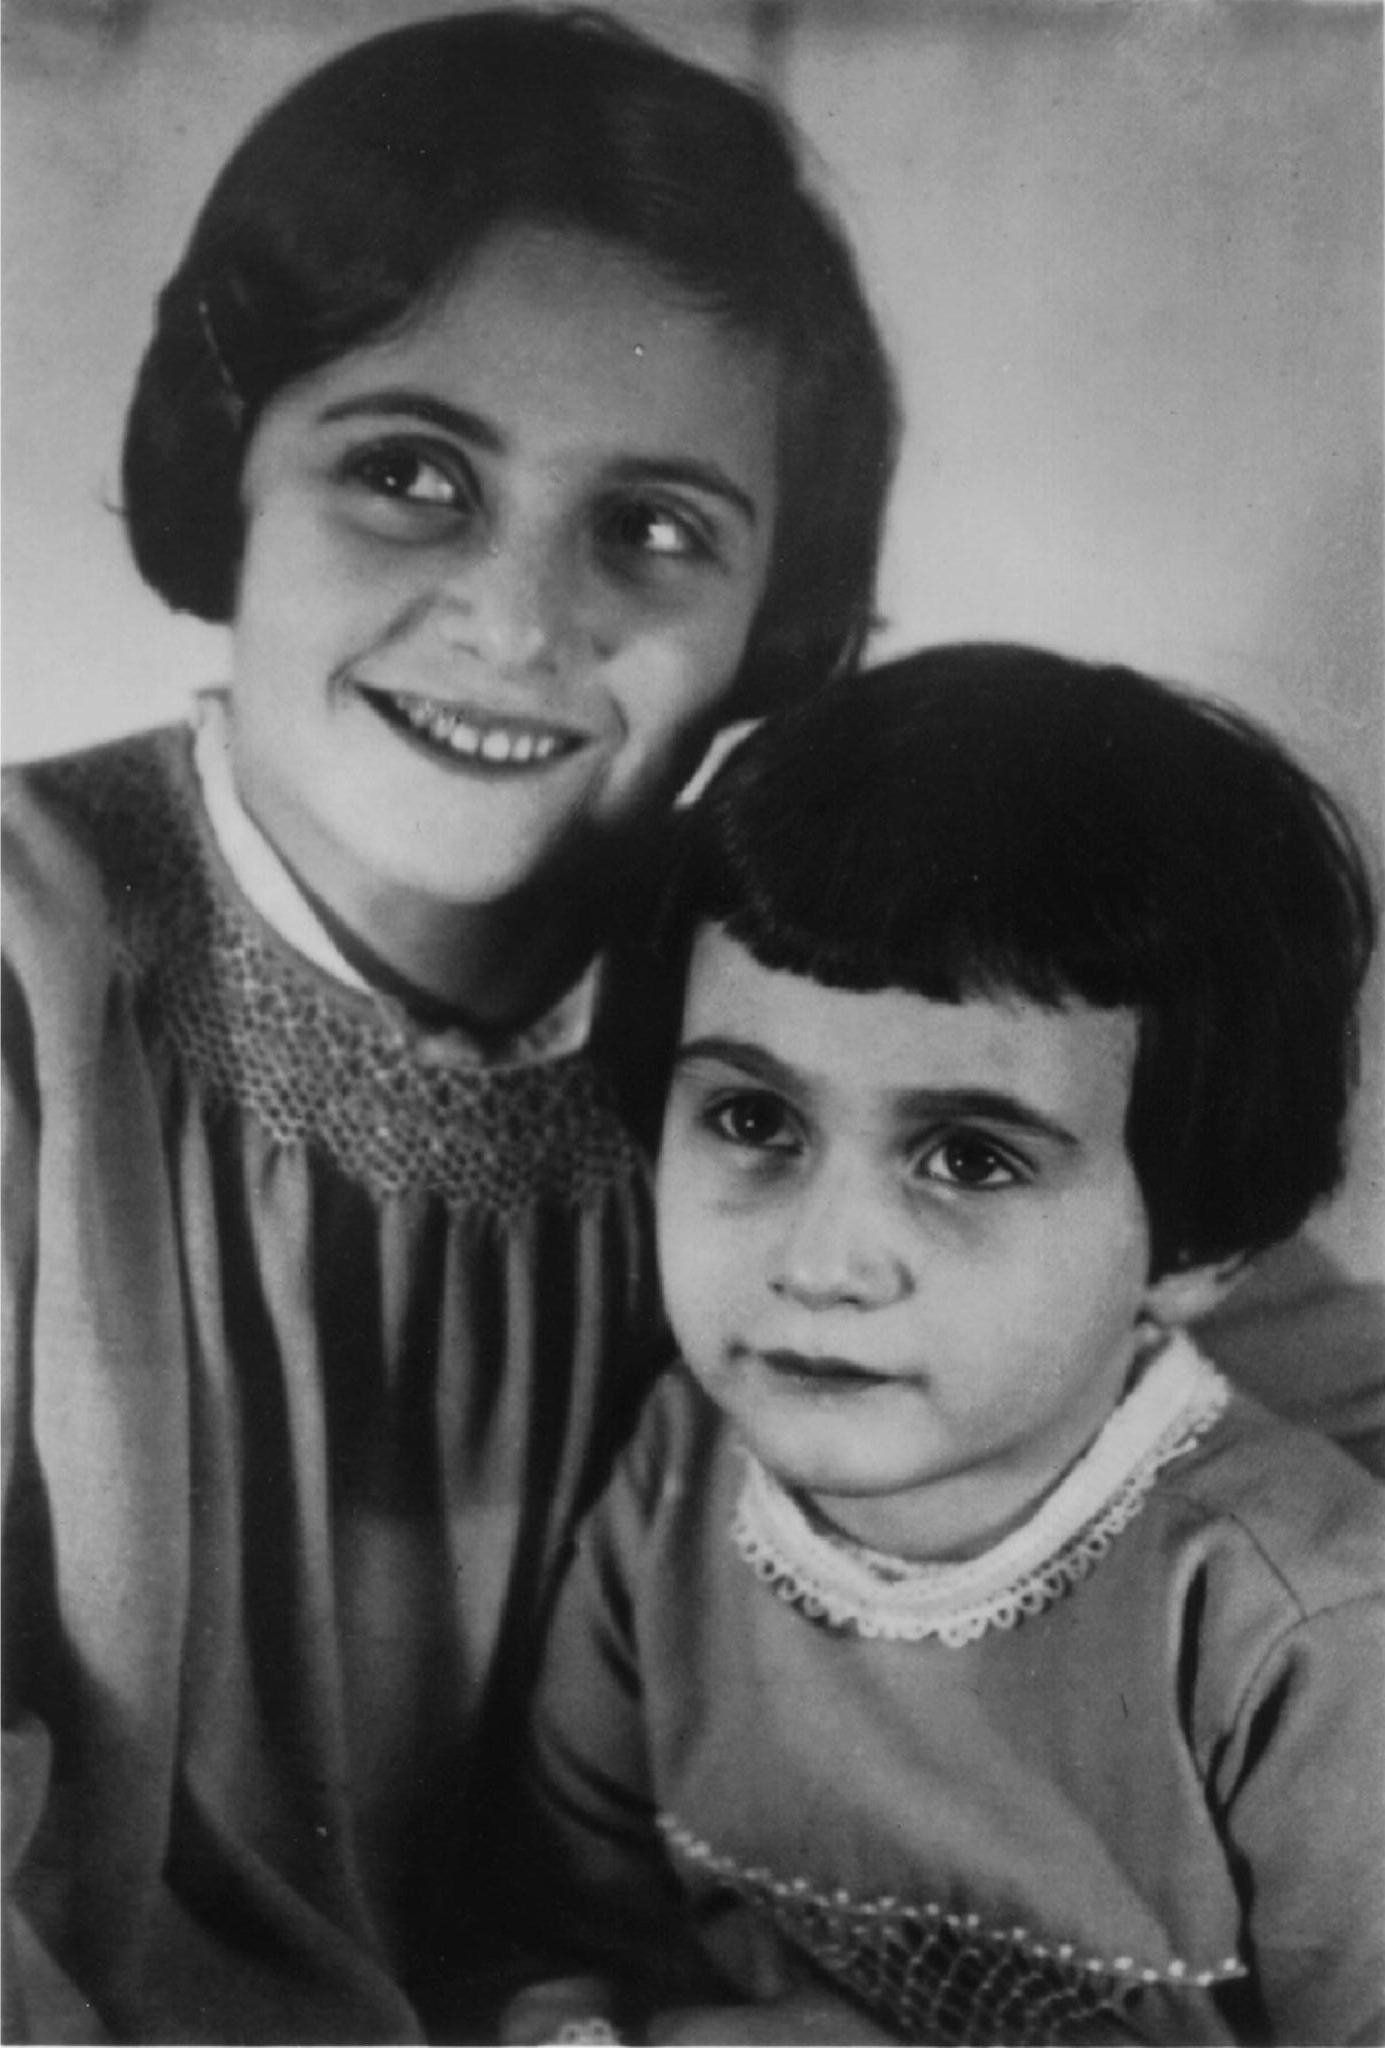 "FOR RELEASE WITH STORY BC-FRANK - Anne Frank, the youmg Jewish girl whose diary of hiding from the Nazis in a Dutch attic came to symbolize the horror of the Holocaust, is the subject of a film made to mark the 50th anniversary of her death. In the film, ""Anne Frank Remembered"" which has been nominated for an Academy Award this year, director Jon Blair seeks to find the real girl underneath the mythology that surrounds her. Frank (R) is shown with her older sister Margot in an undated photo from the film.  FEATURE FRANK"